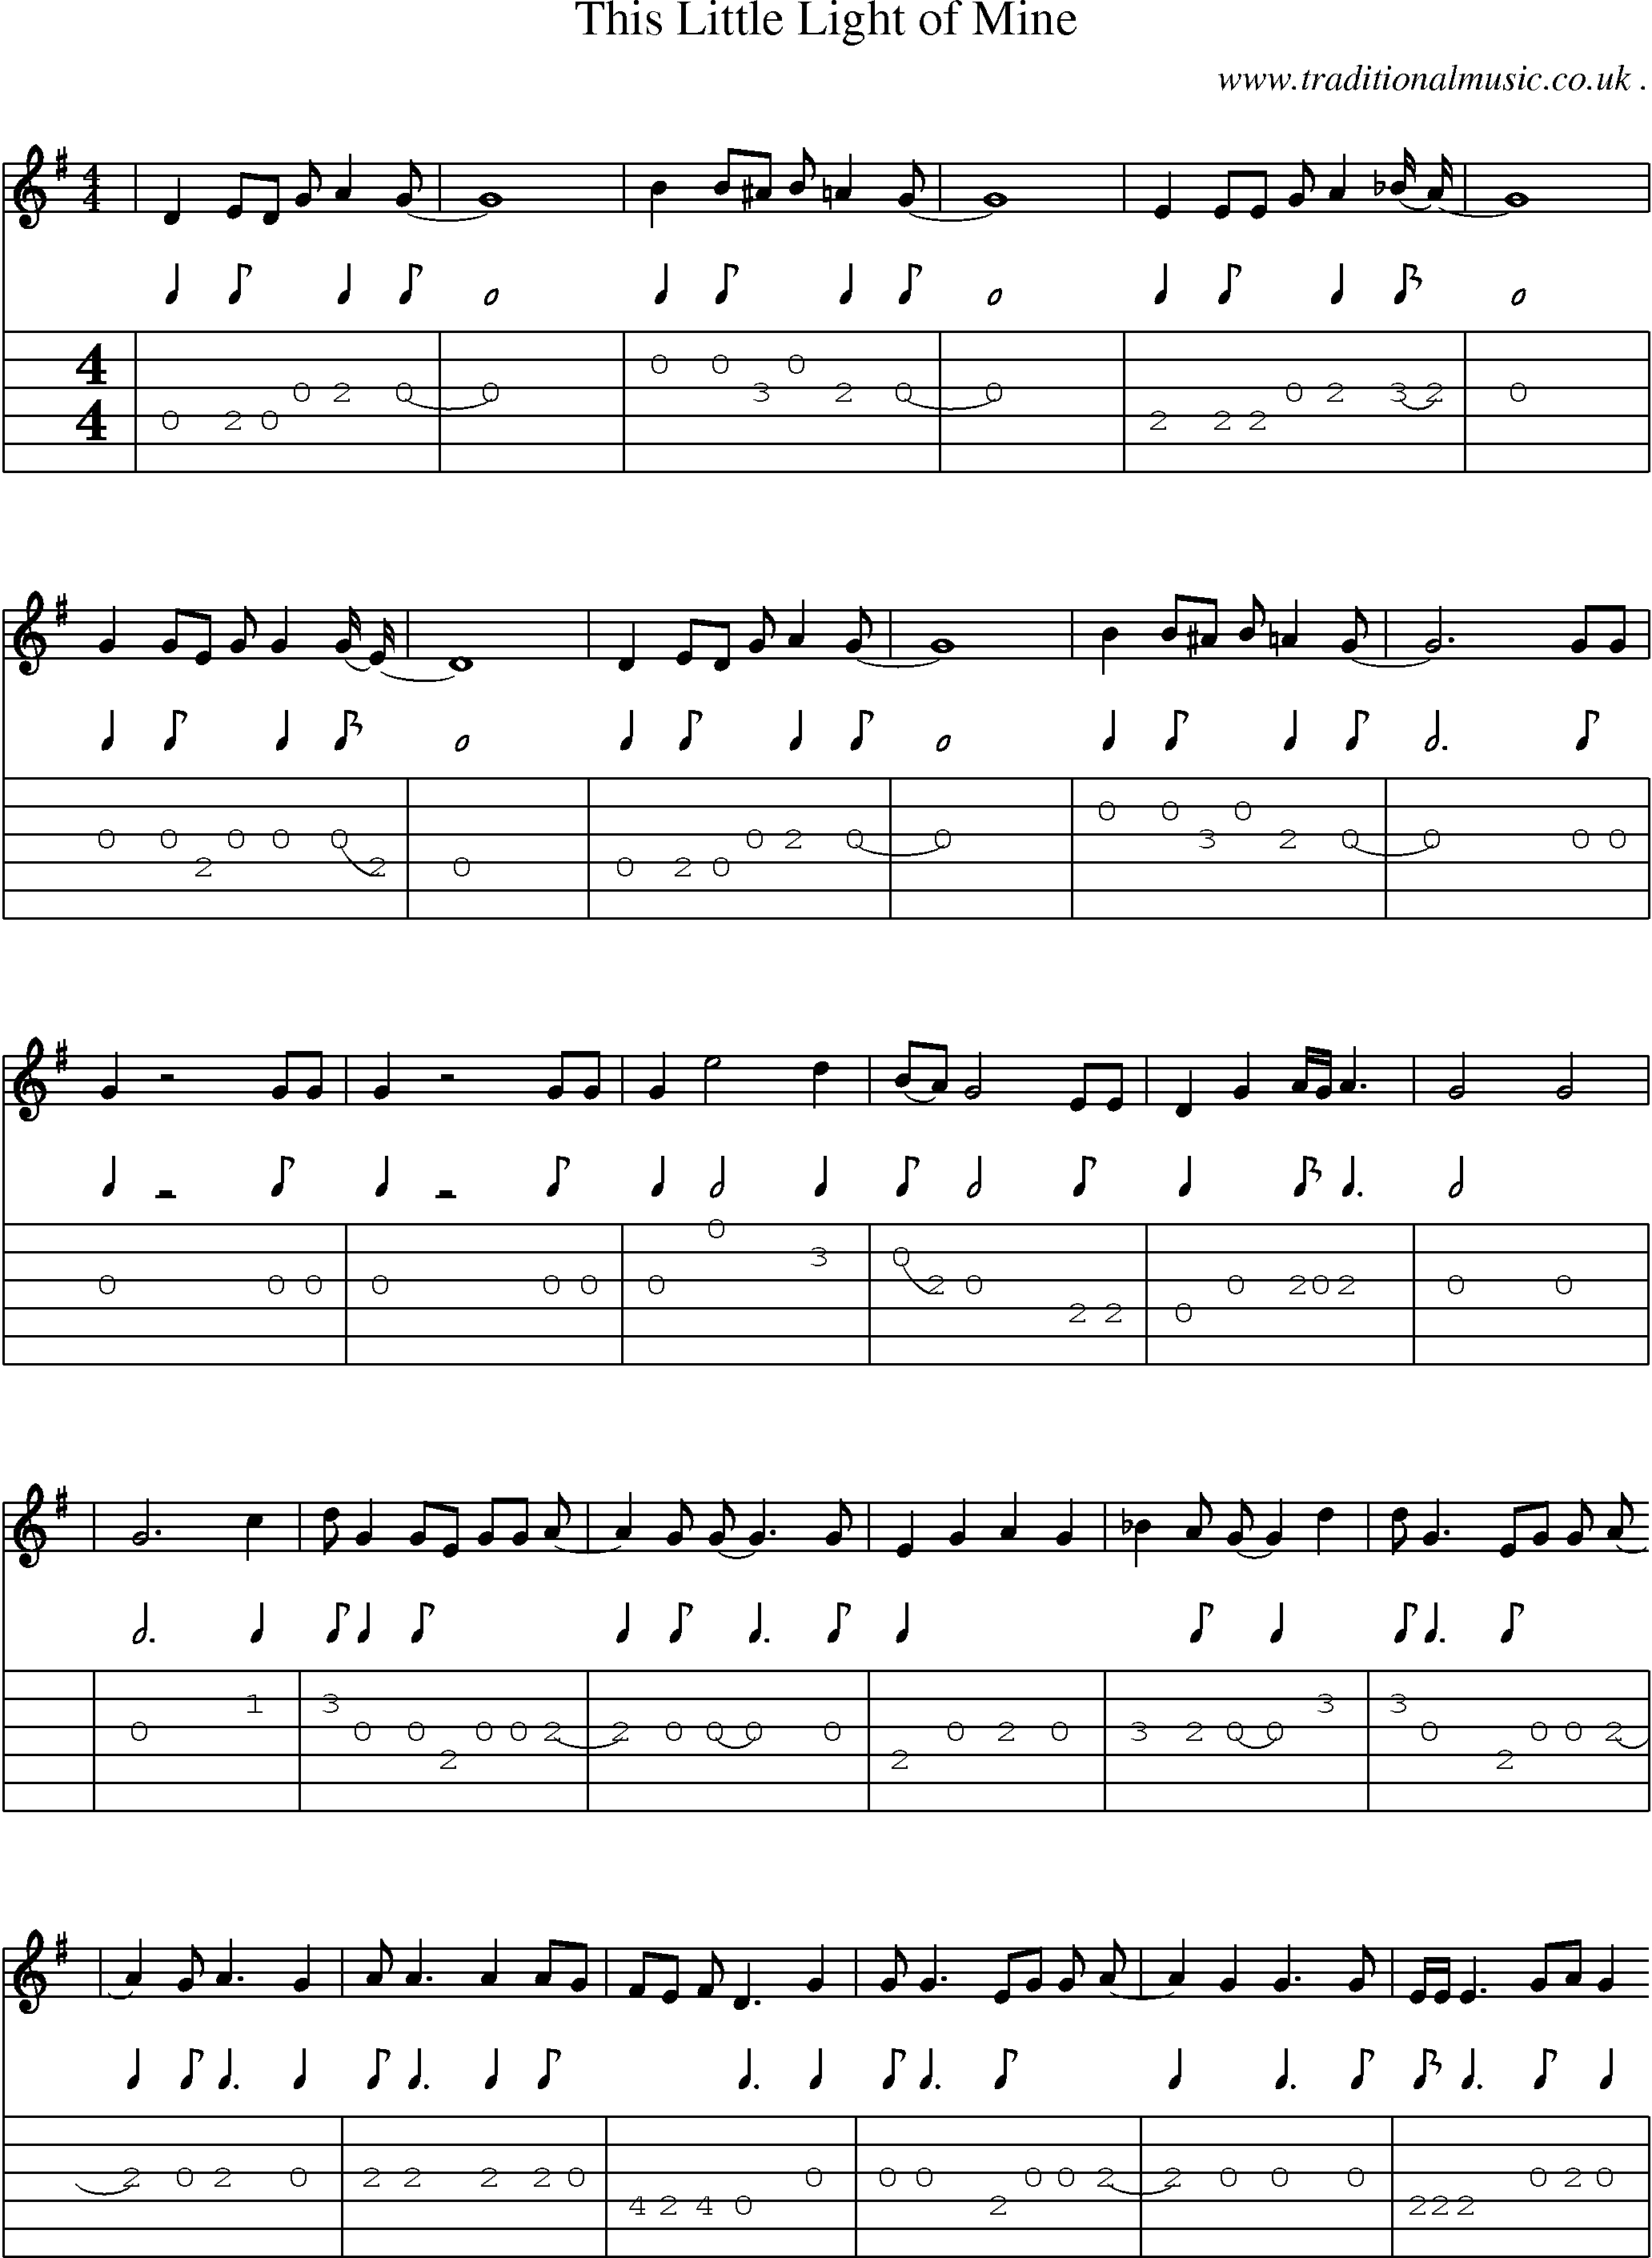 American Old-time music, Scores and Tabs for Guitar - This Little Light Of Mine